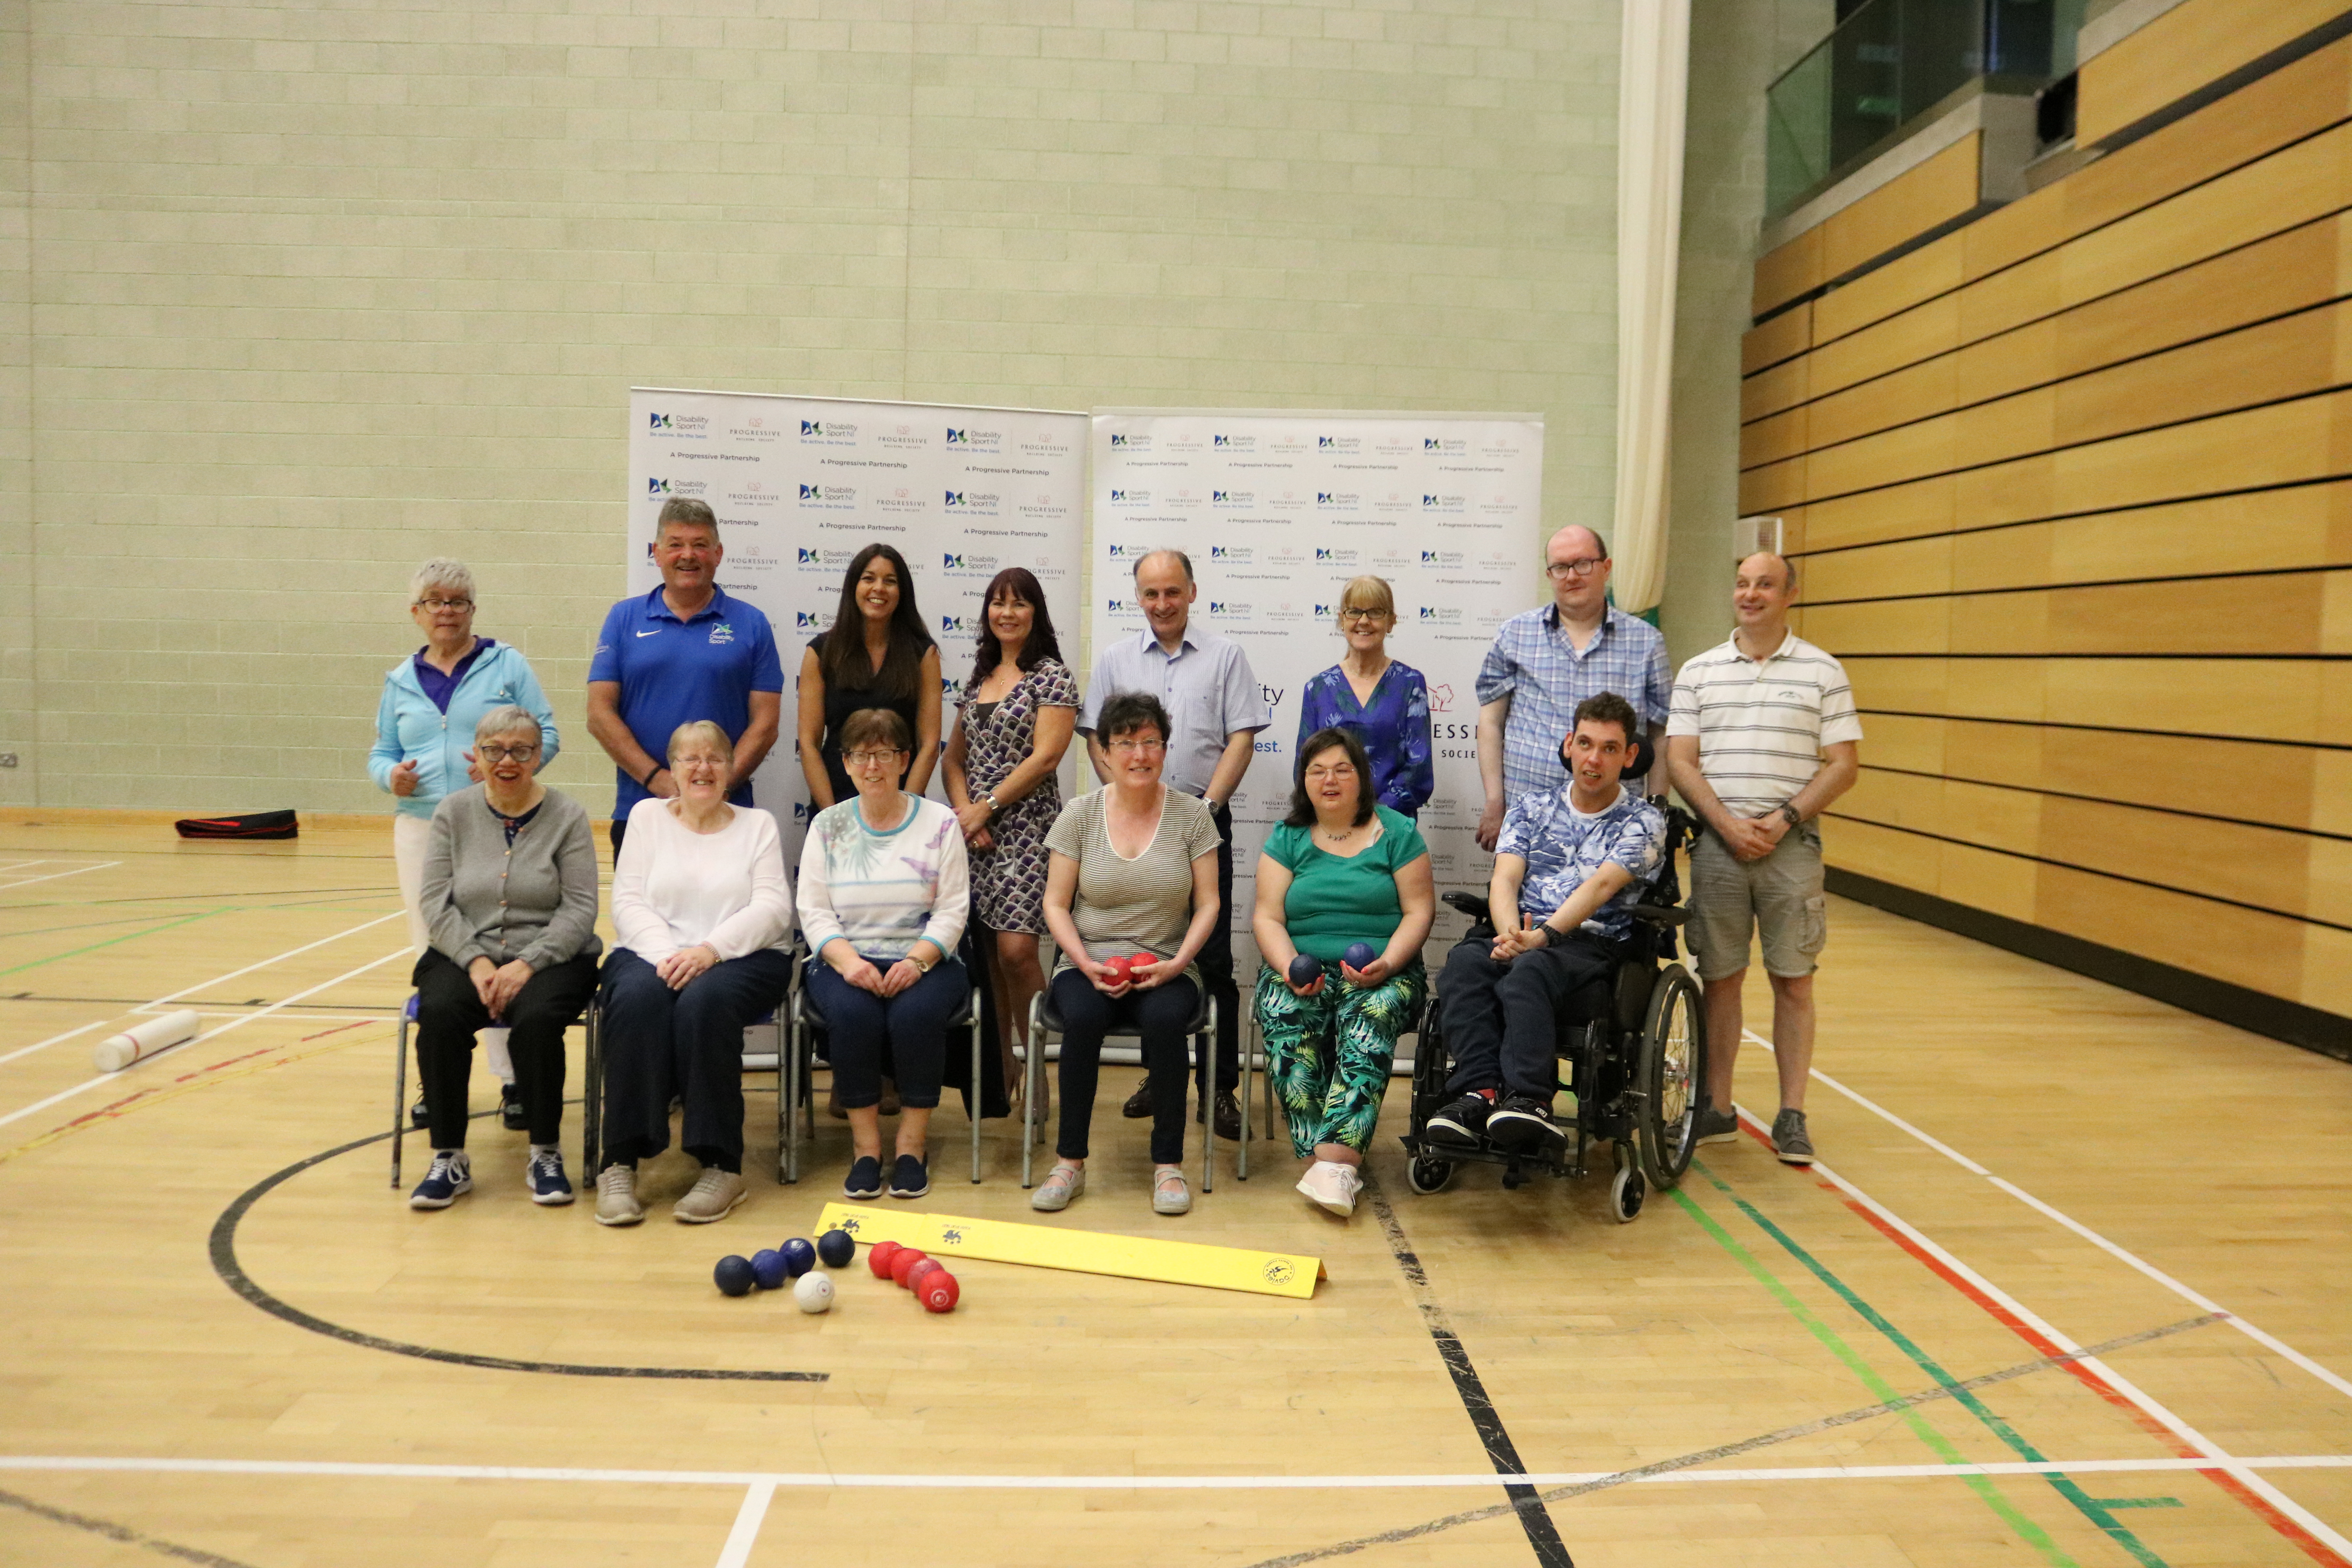 An image of a boccia group sitting posing for the camera with representatives from Disability Sport NI and The Progressive Building Society